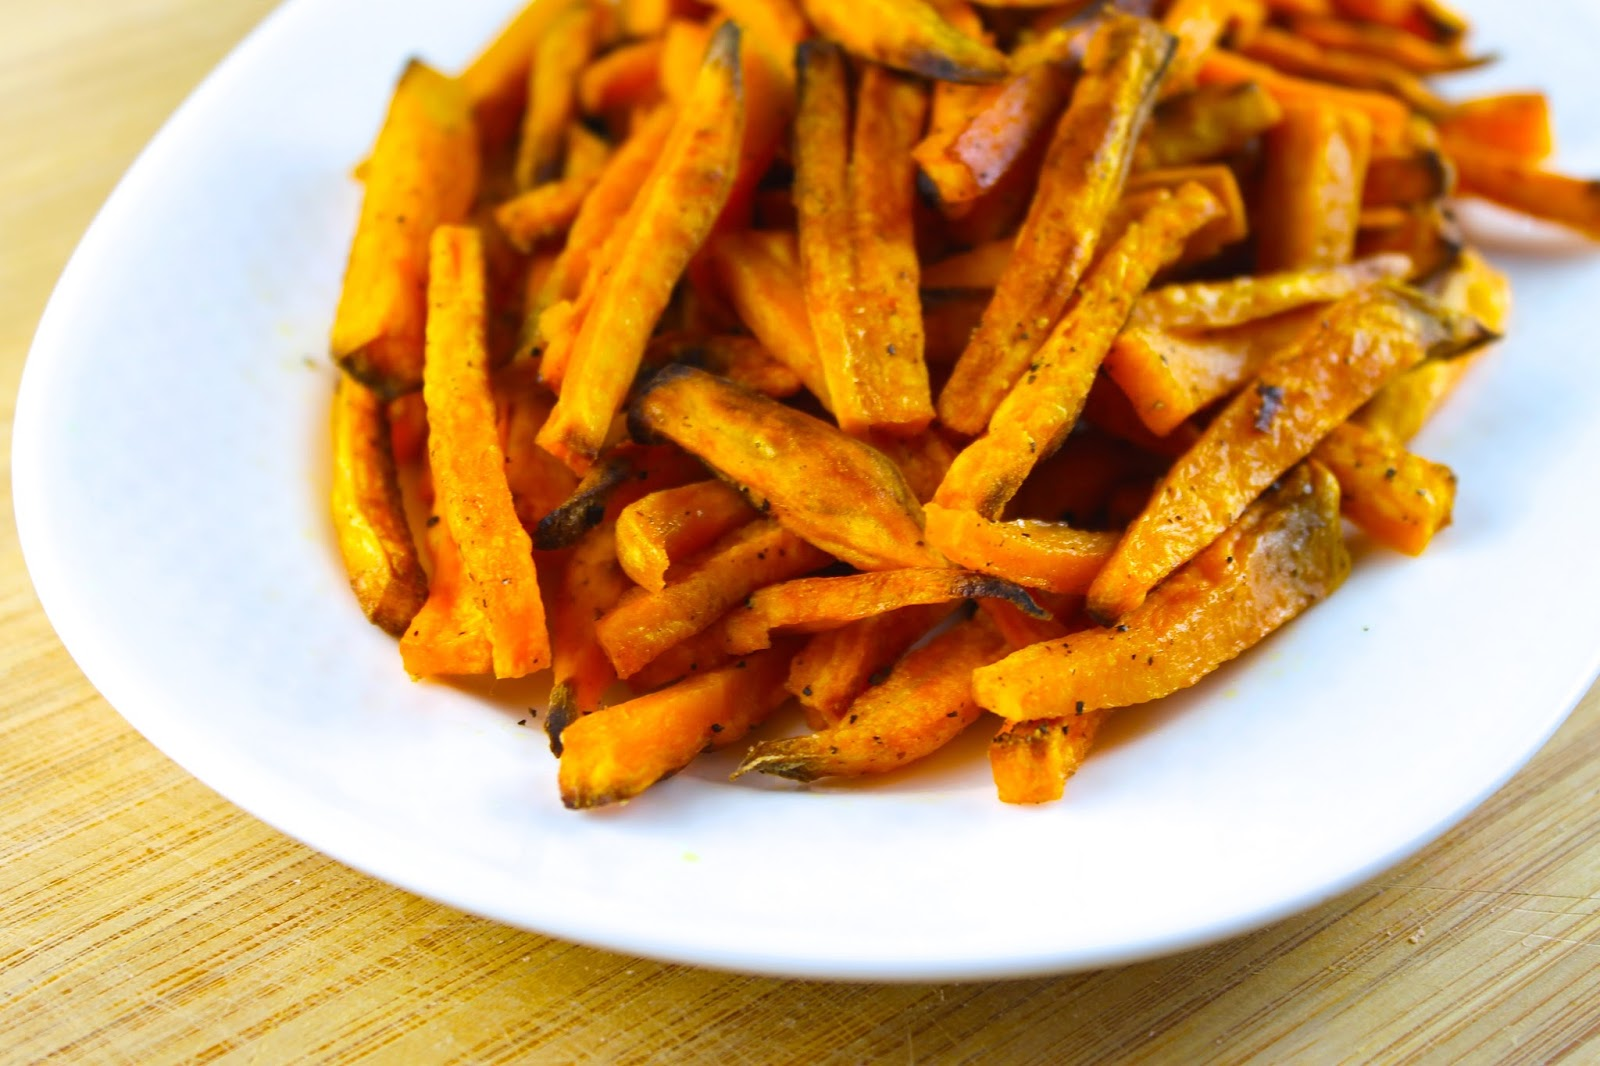 baked sweet potato sticks ingredients for 6 servings